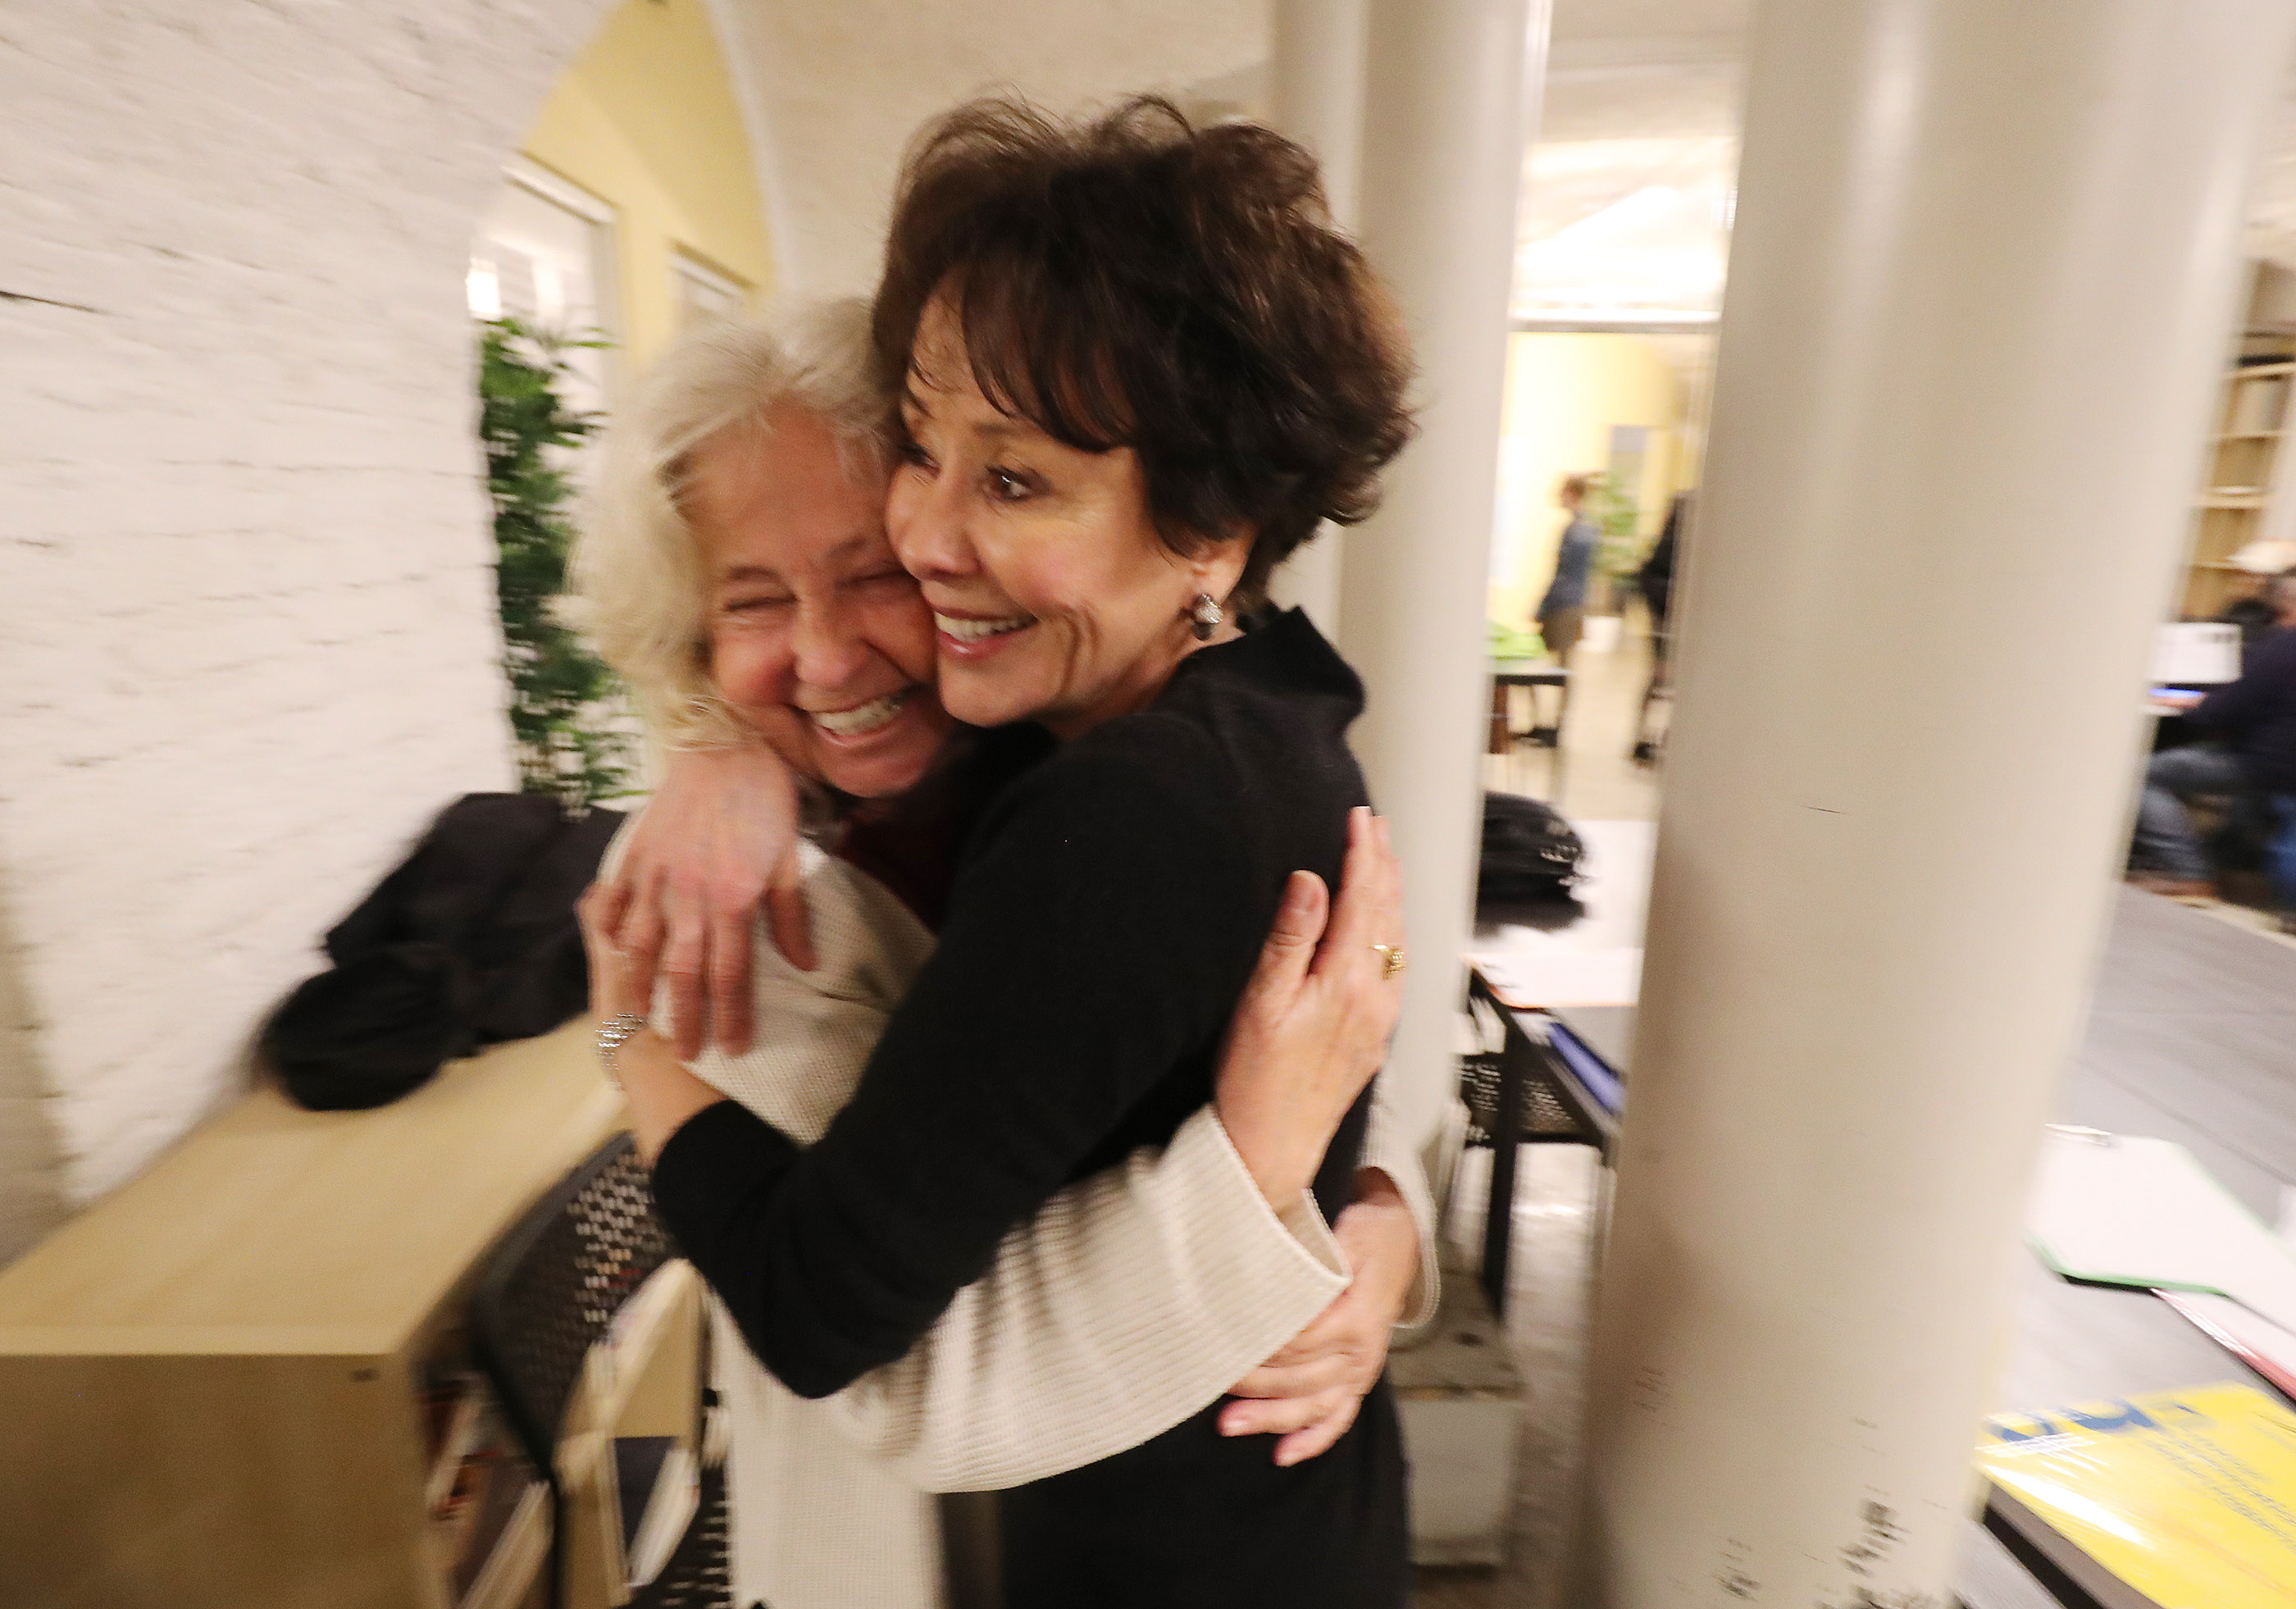 Latter-day Saint Charities missionary Sister Anita Canfield, right, hugs Latter-day Saint volunteer Cecilia Panecianco at the Latter-day Saint Charities Friendship Center in Rome, Italy.